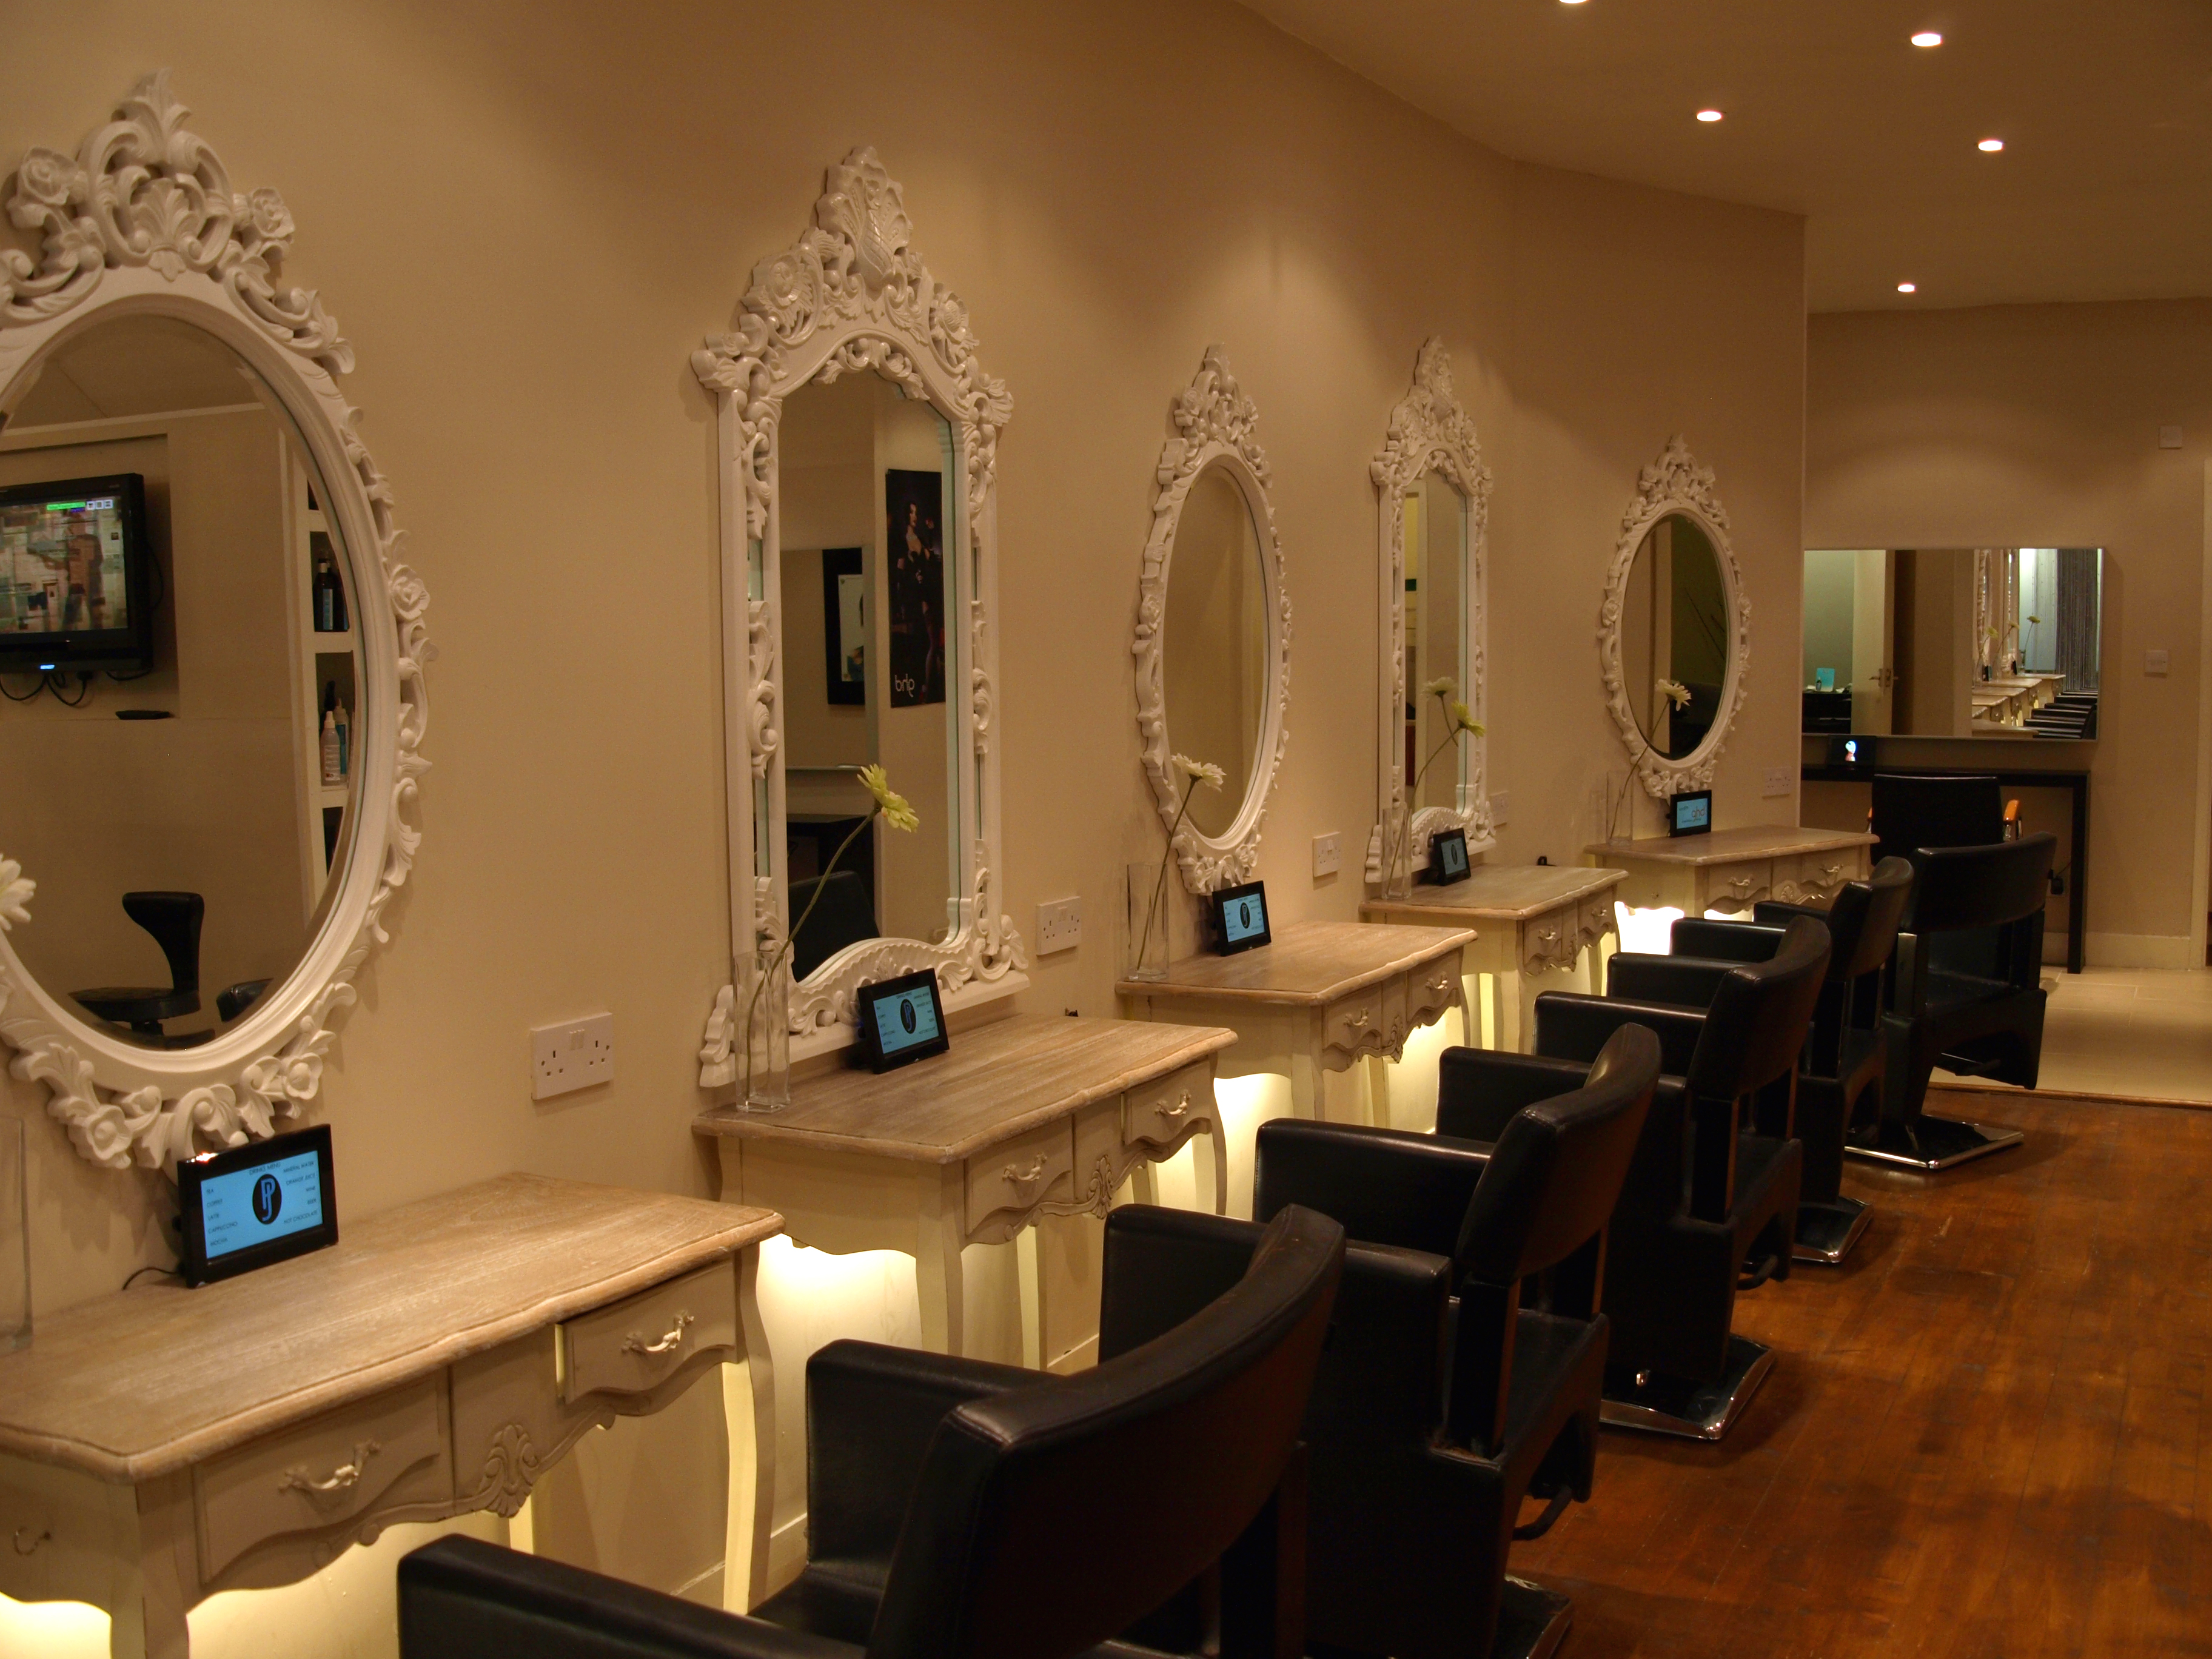 Paul Joseph Hairdressing Ltd